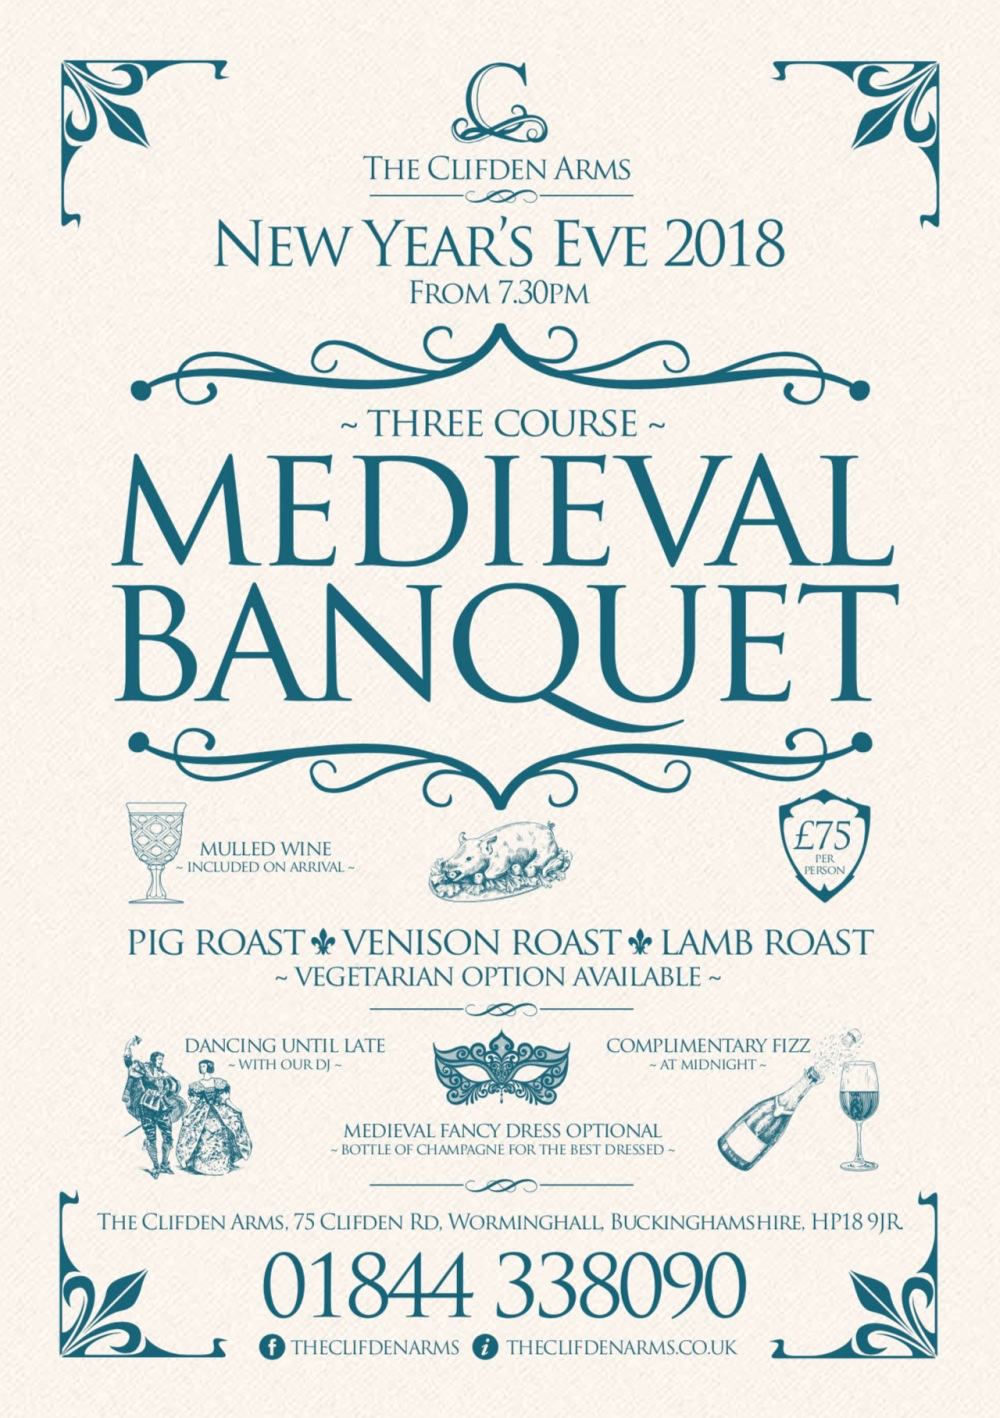 Clifden Arms New Year Eve